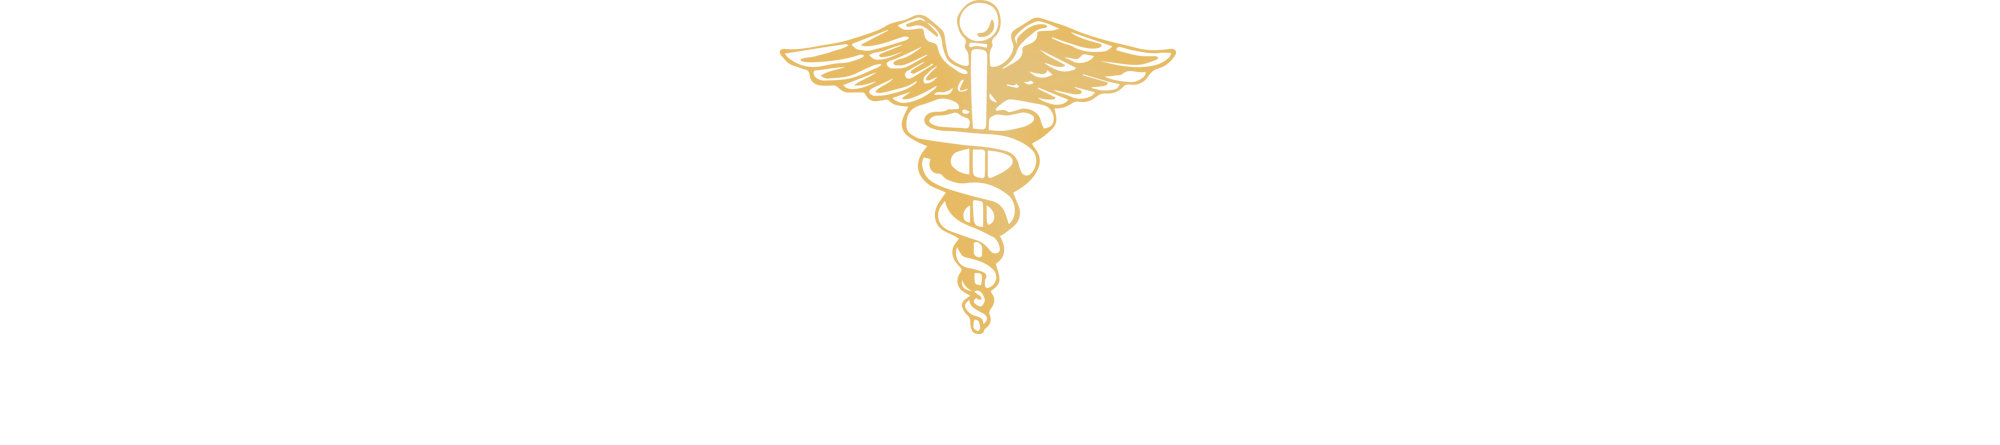 Operation Whitecoat, 1954-1973